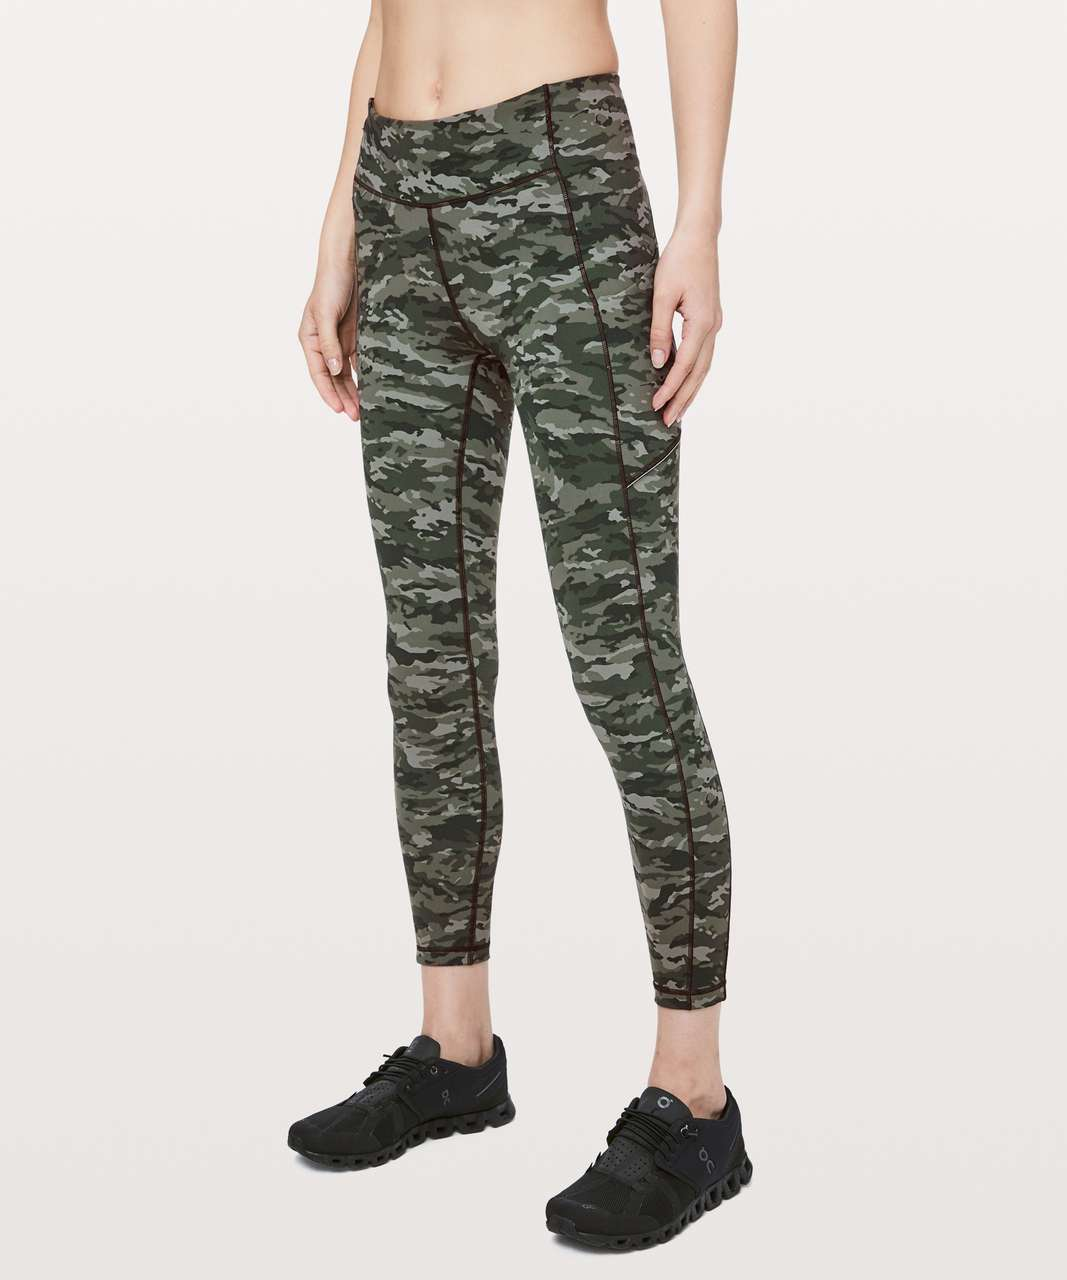 Lululemon Speed Up 7/8 Tight - Evergreen Camo Green Multi